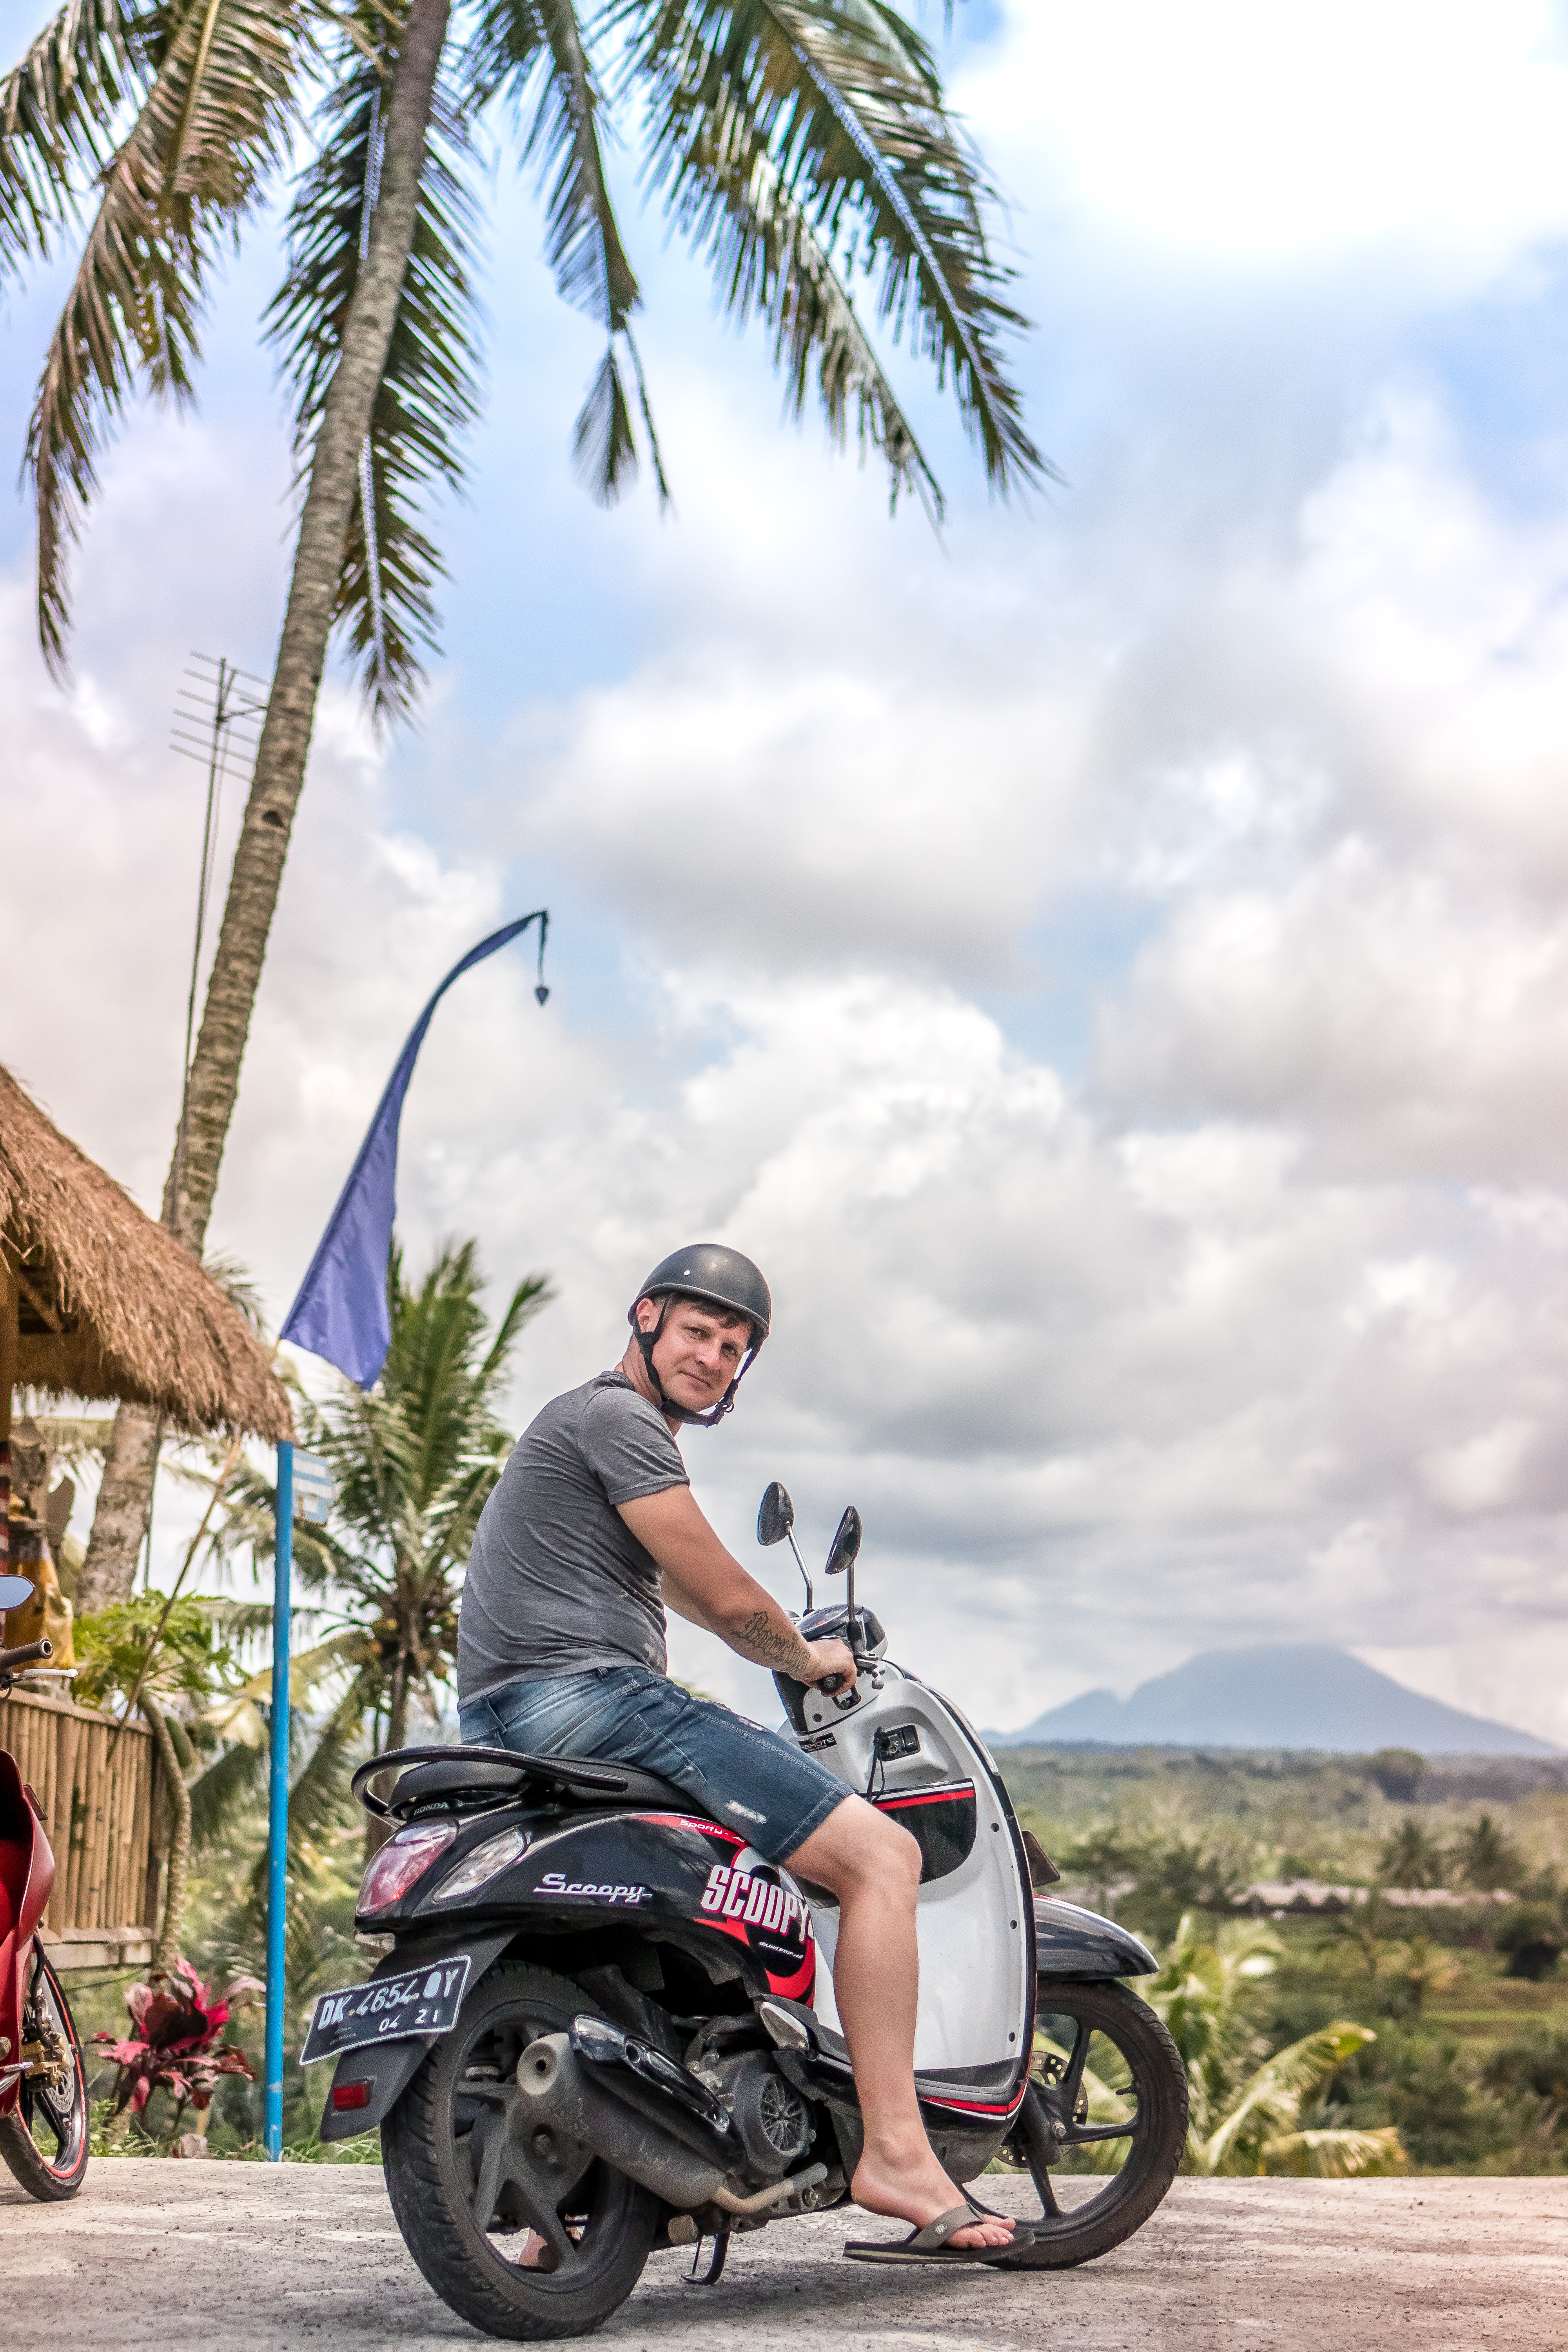 Man riding motor scooter photo